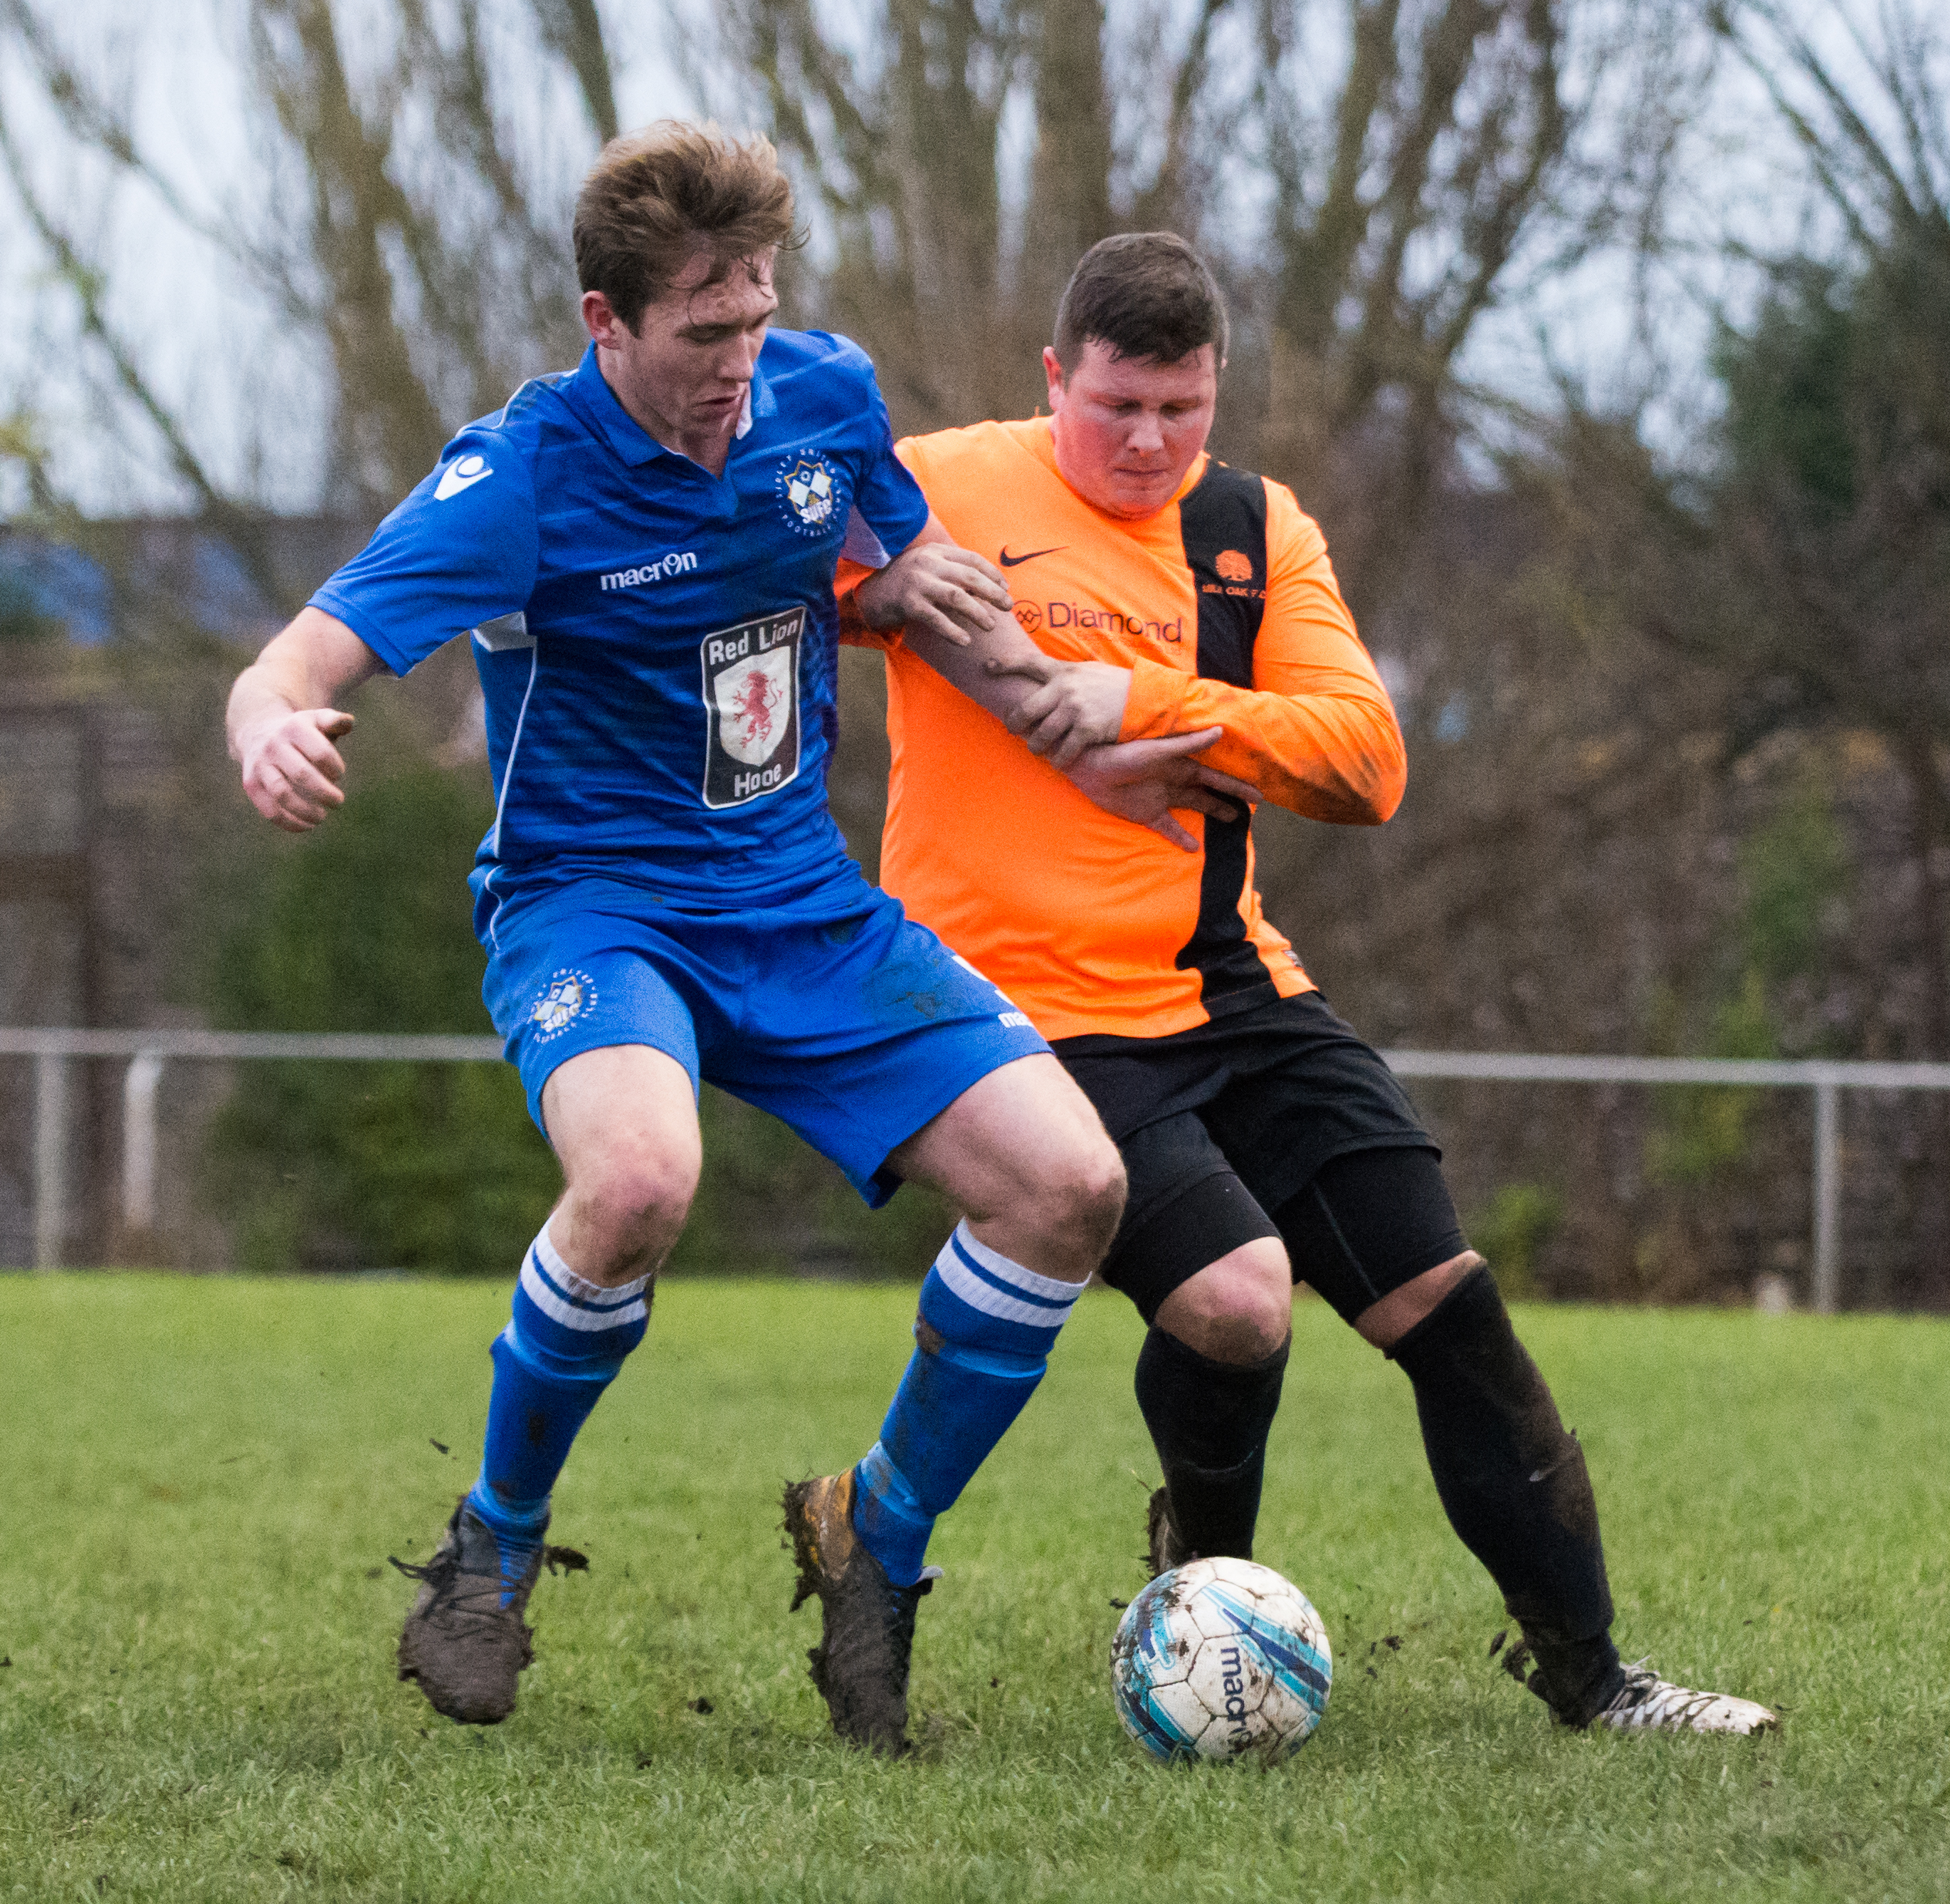 Mile Oak Res vs Sidley United 09.12.17 42